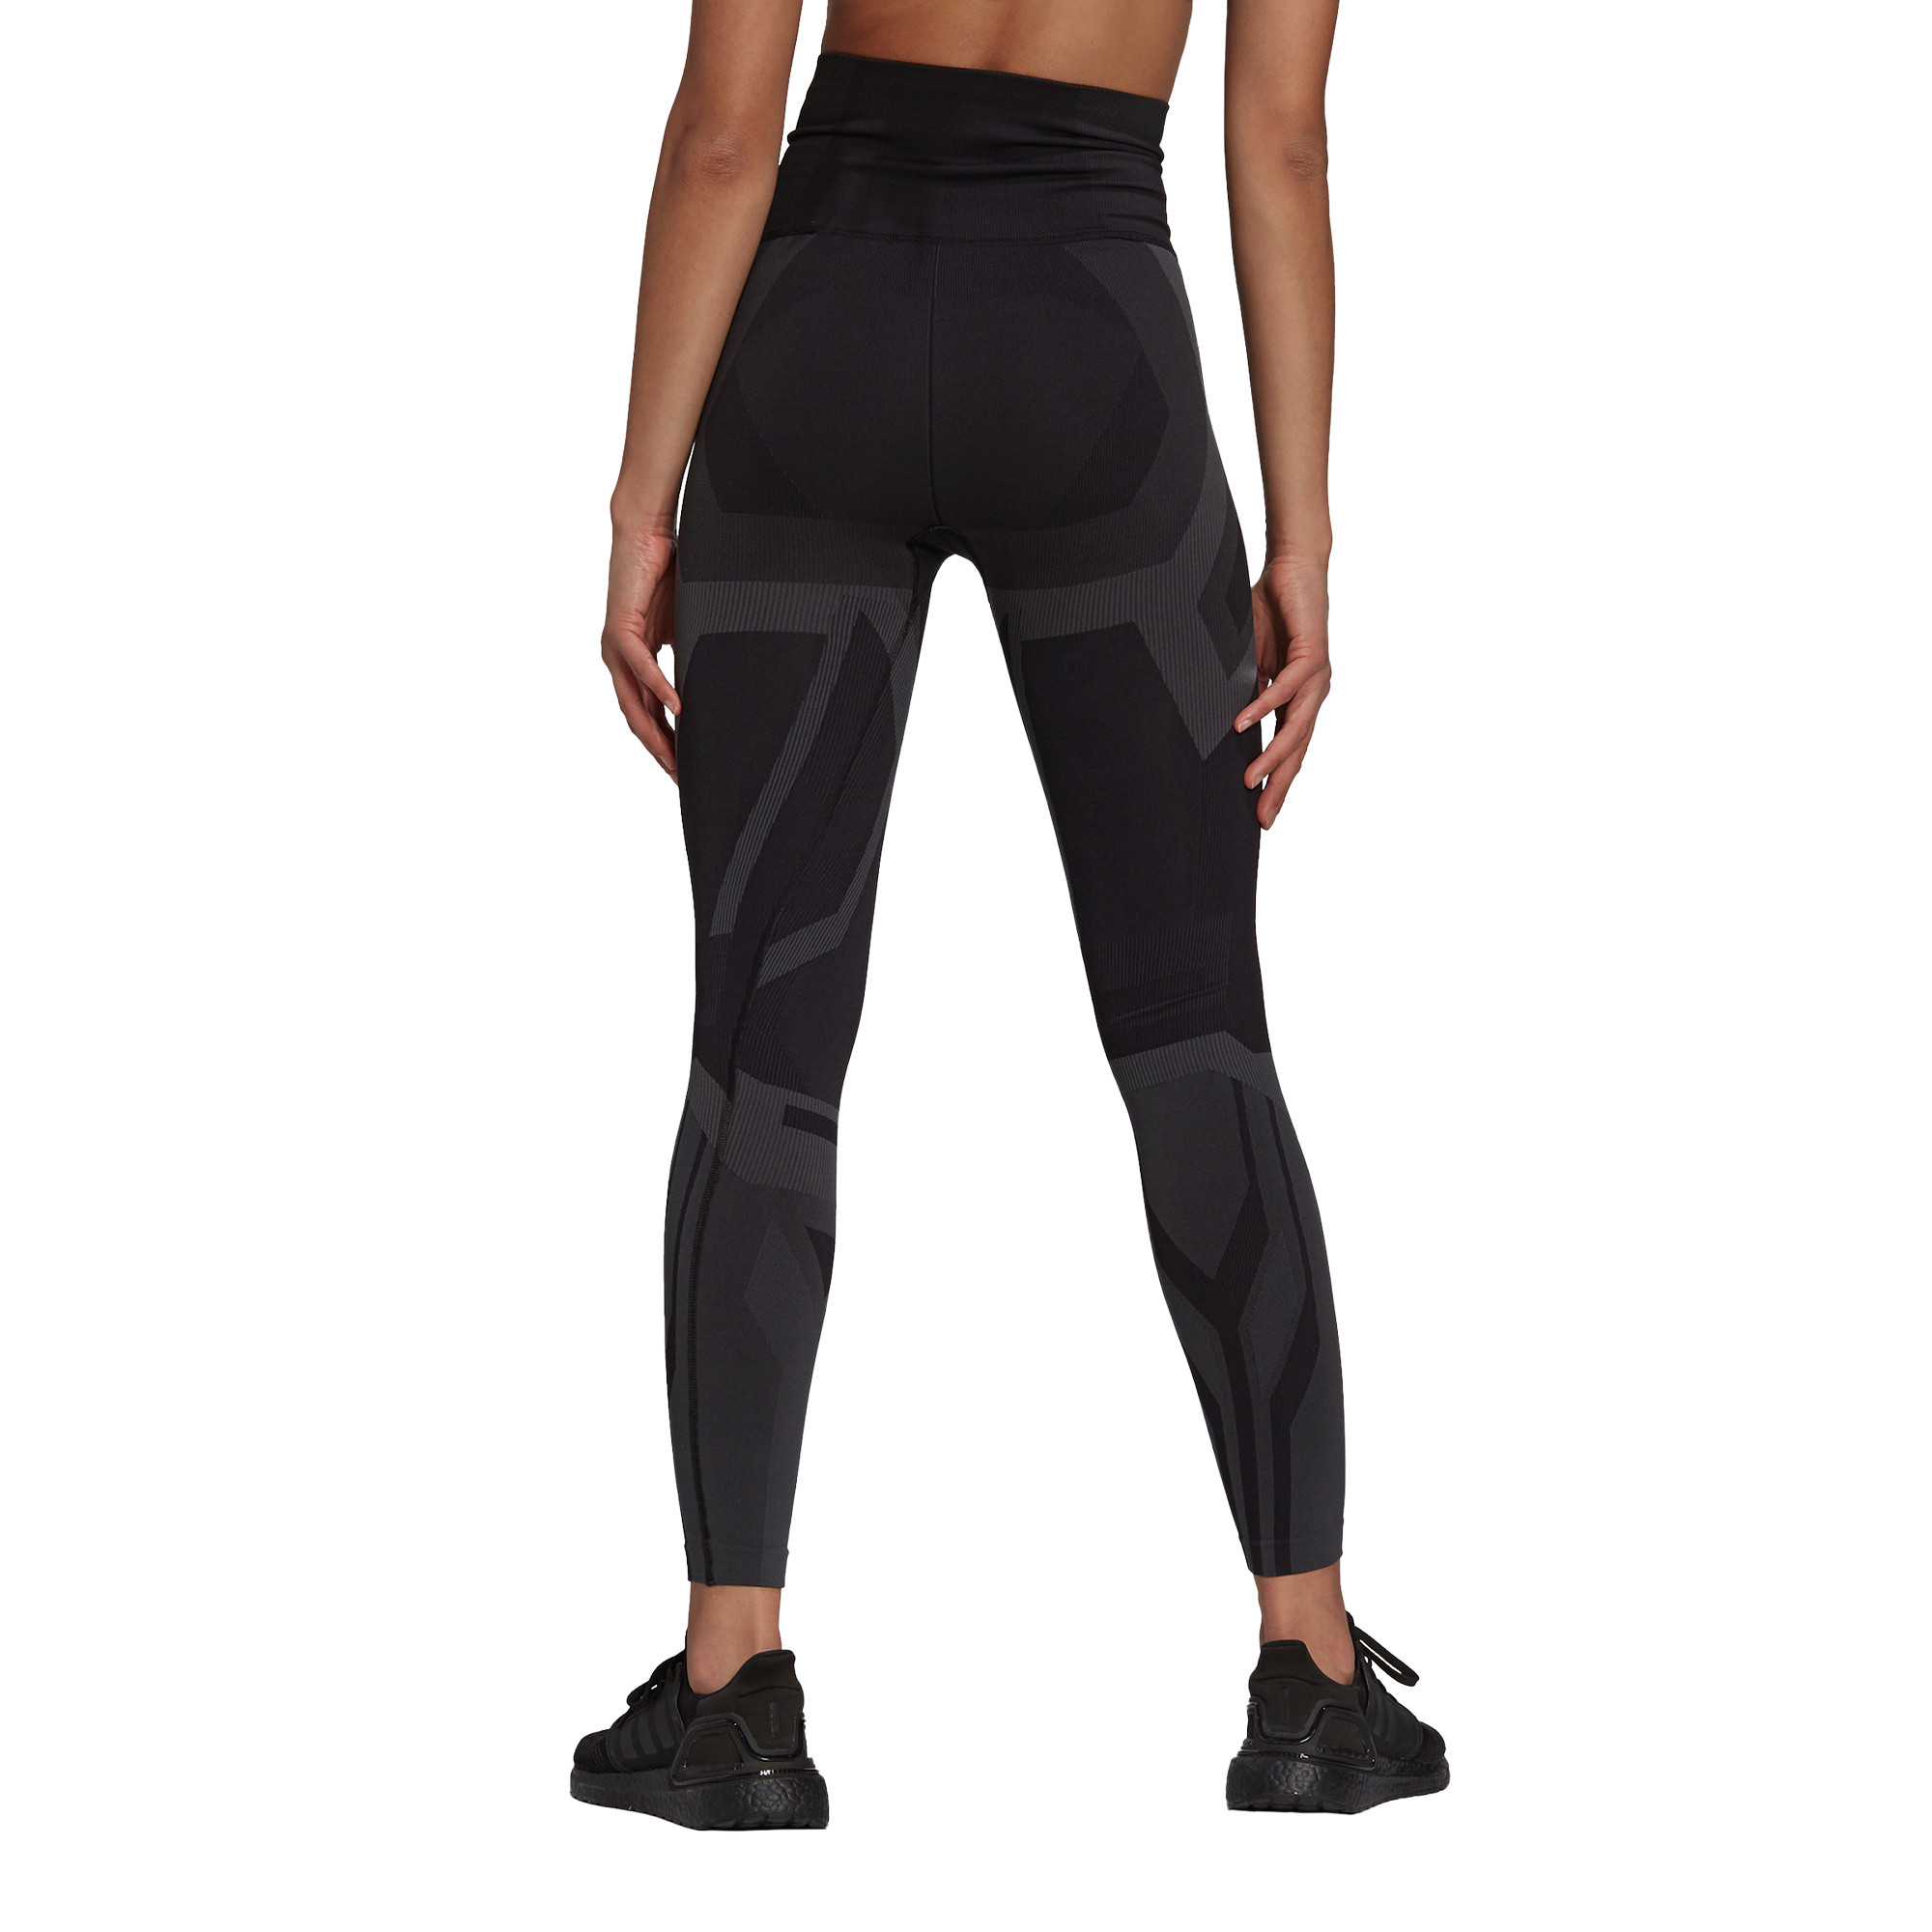 Tight Formotion Sculpt Two-Tone, Nero, large image number 1